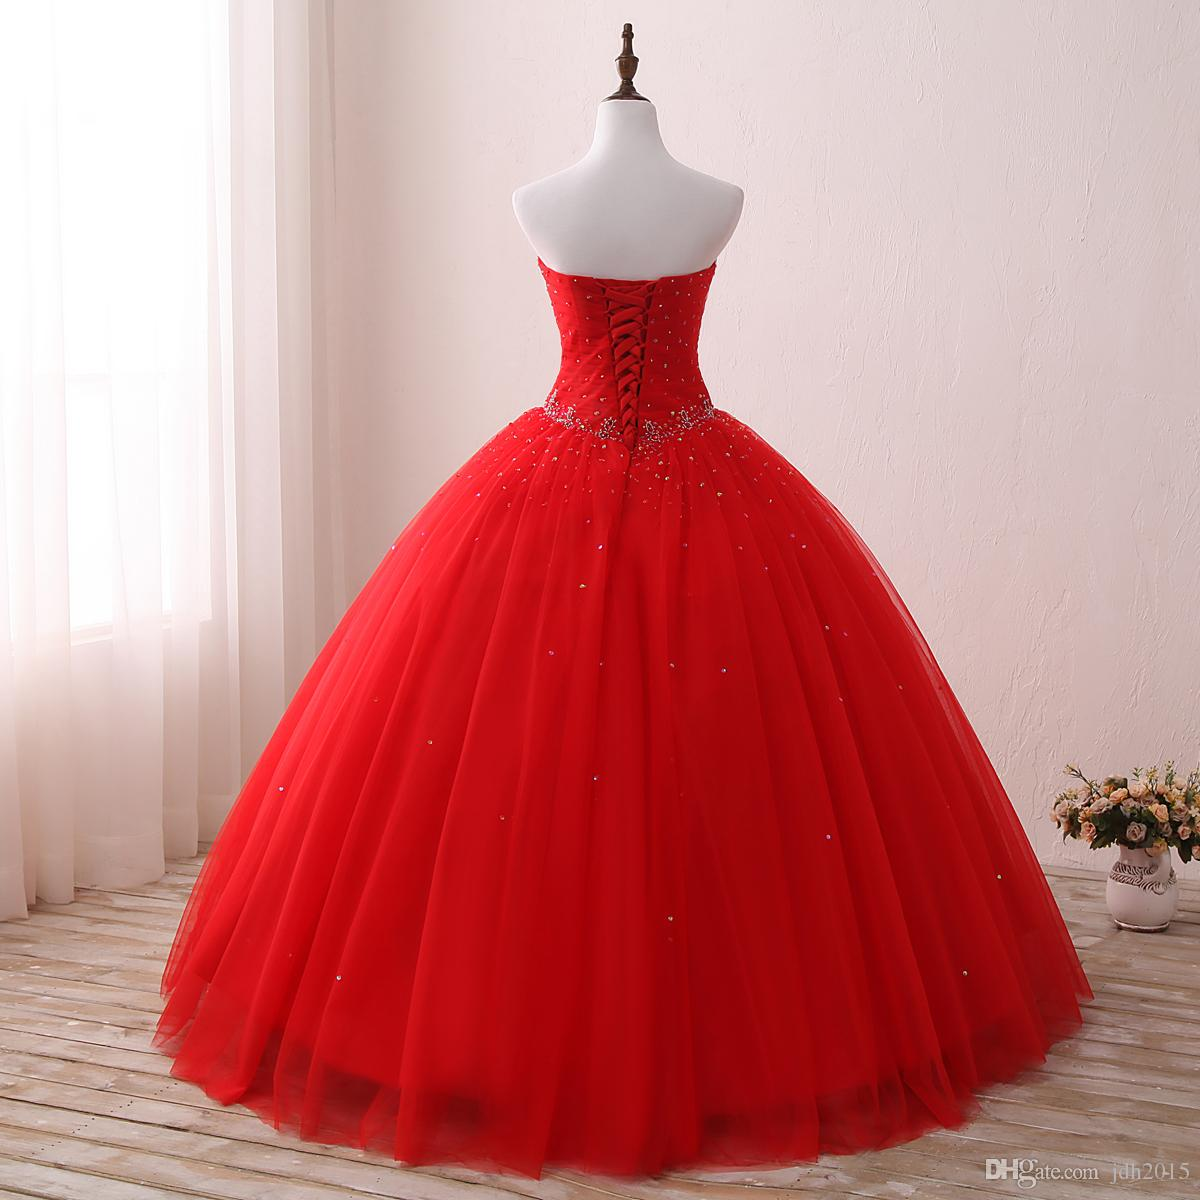 Bling Bling Beaded Crystal Red Evening Dresses Long Sweetheart Sequined Ball Gowns Women Formal Dresses